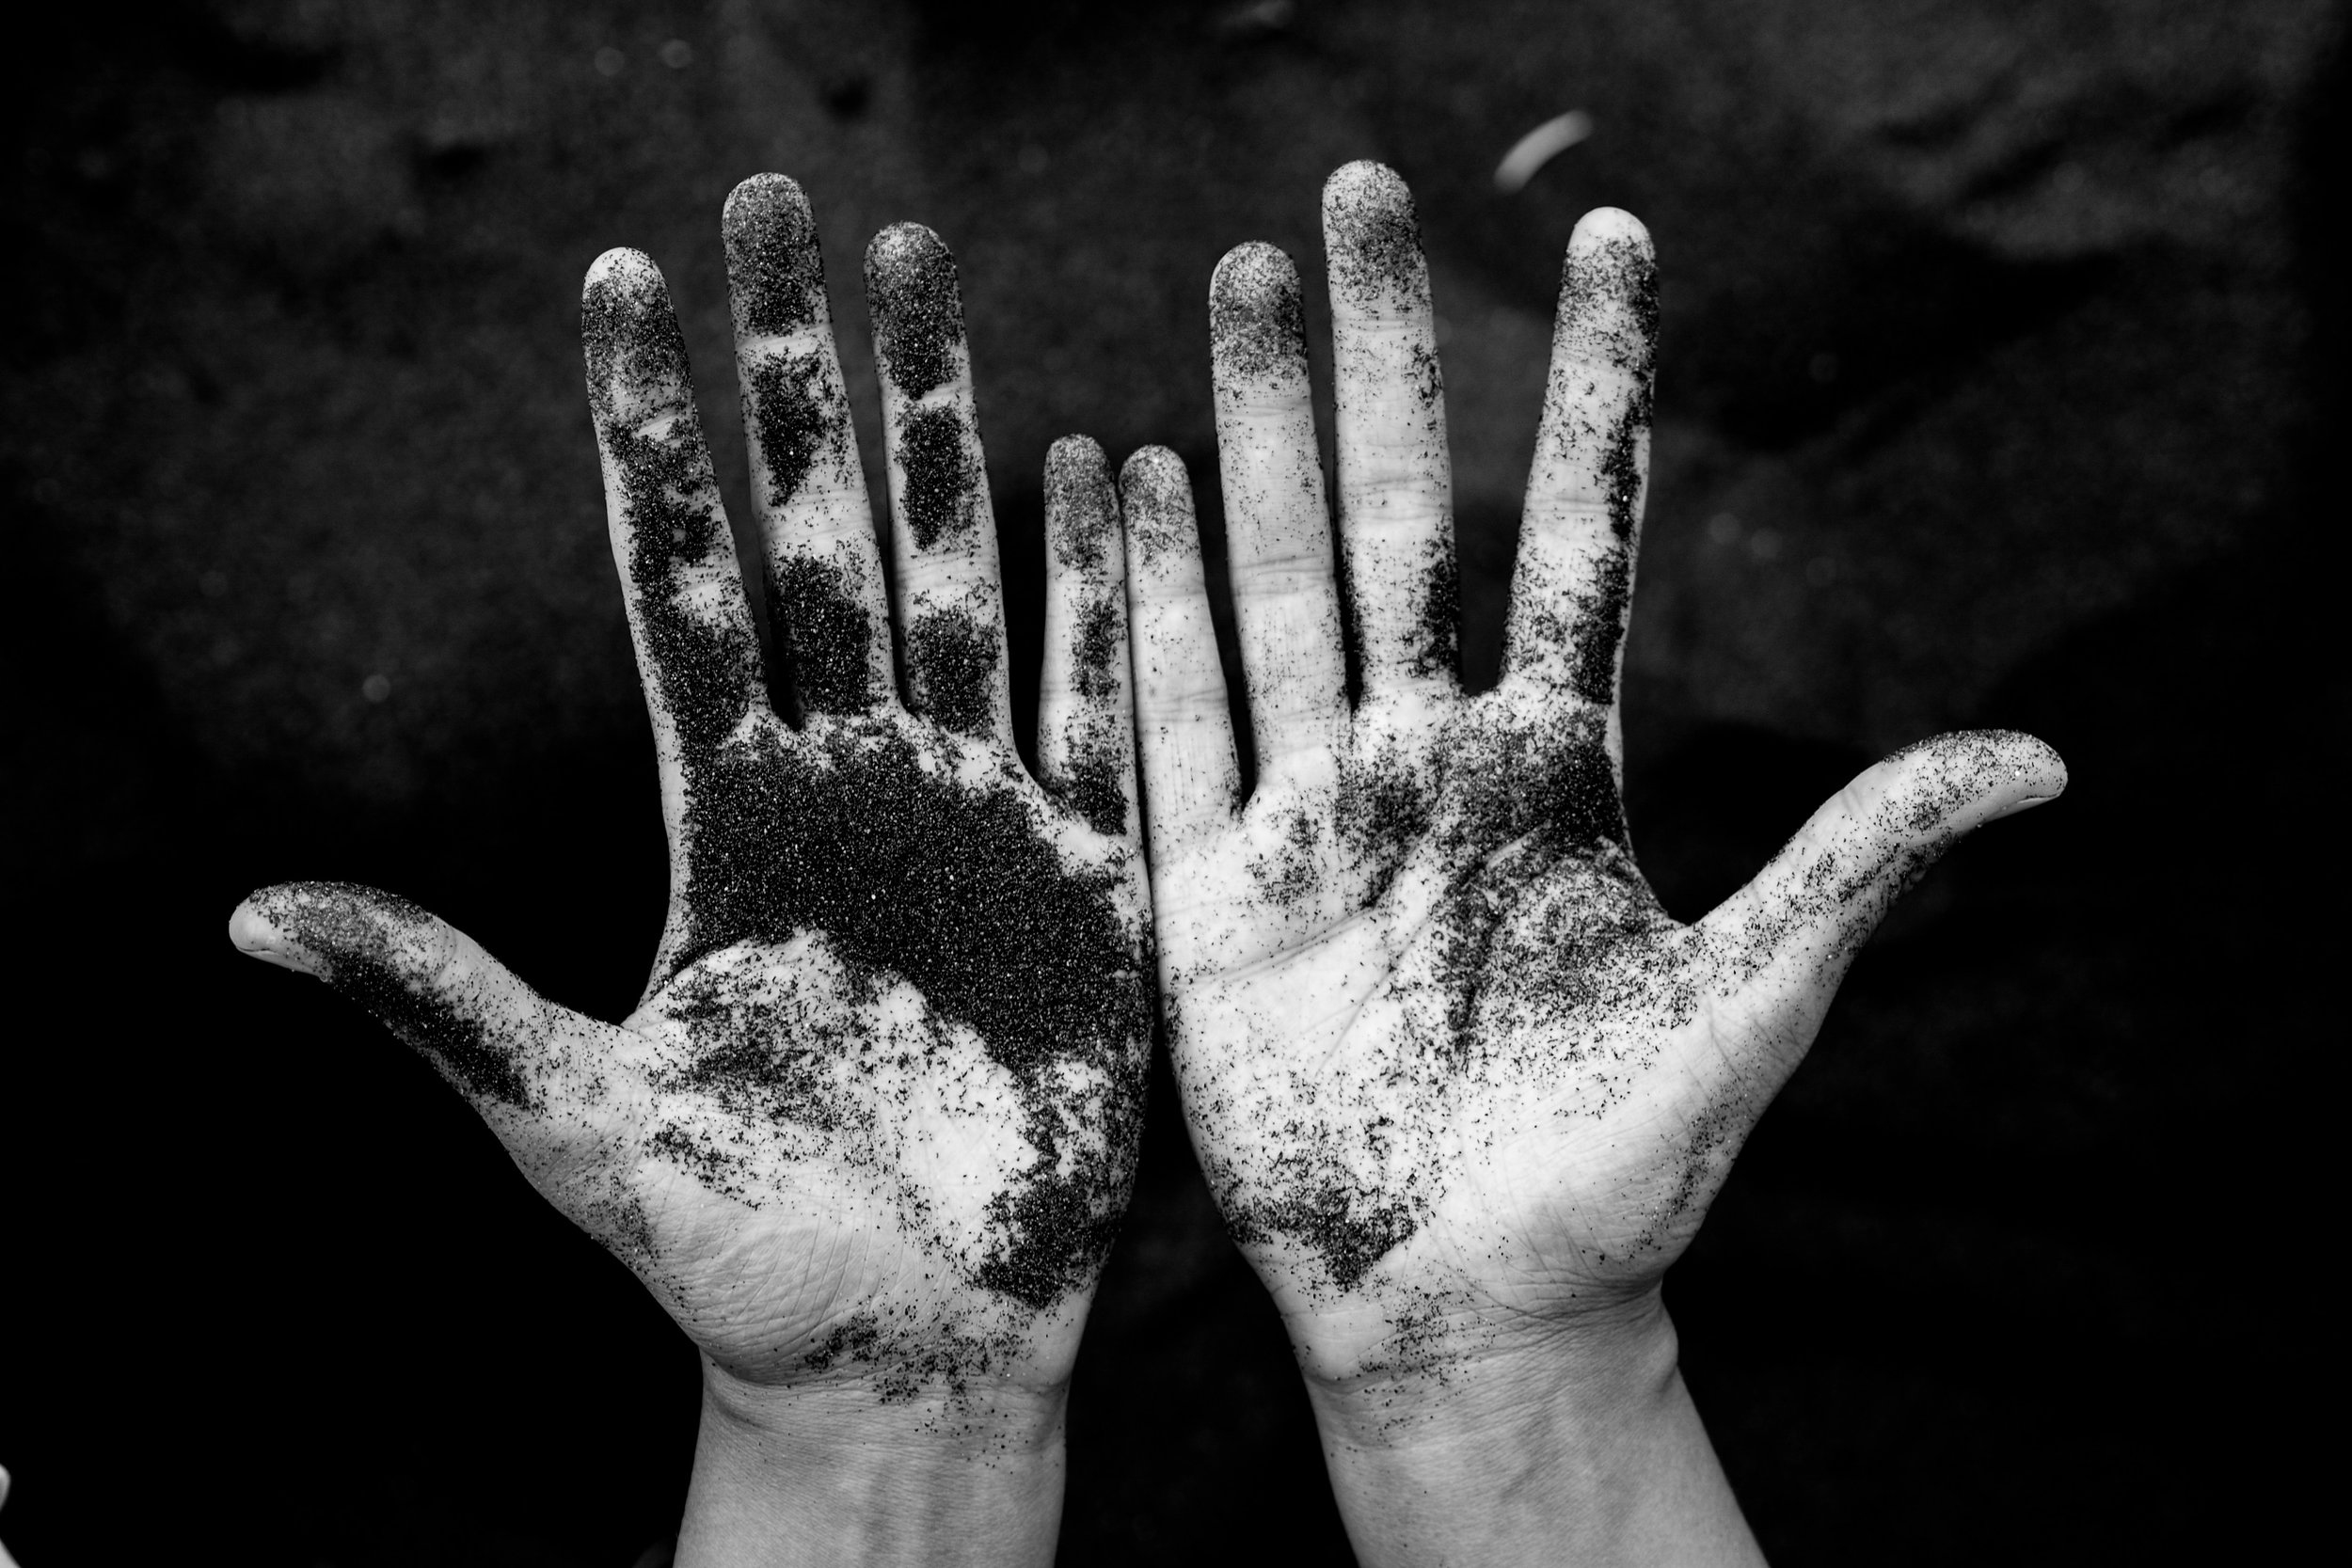 IT'S TIME TO GET YOUR HANDS DIRTY -